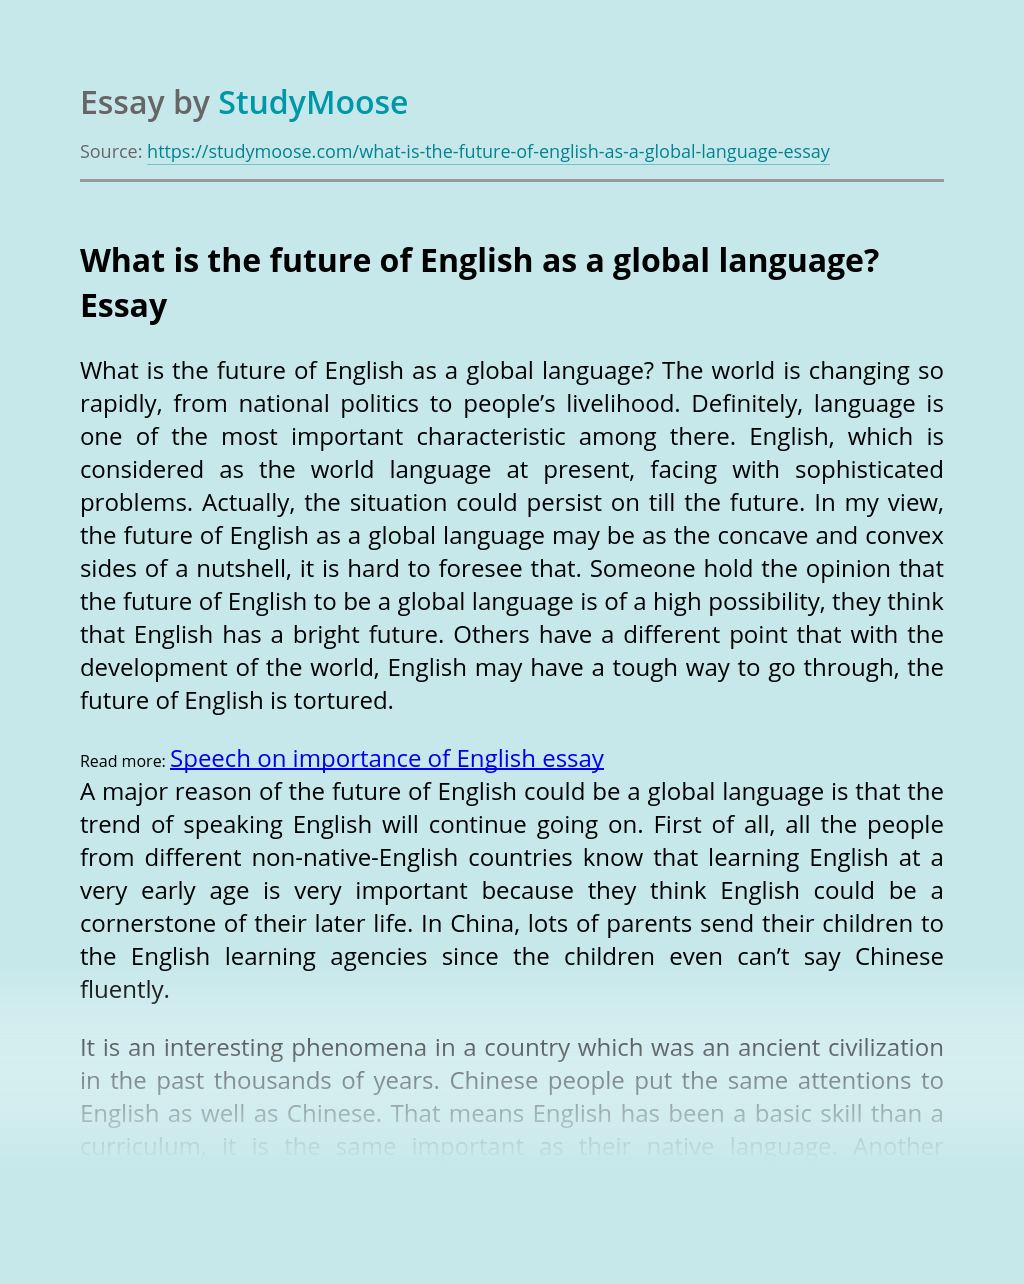 What is the future of English as a global language?